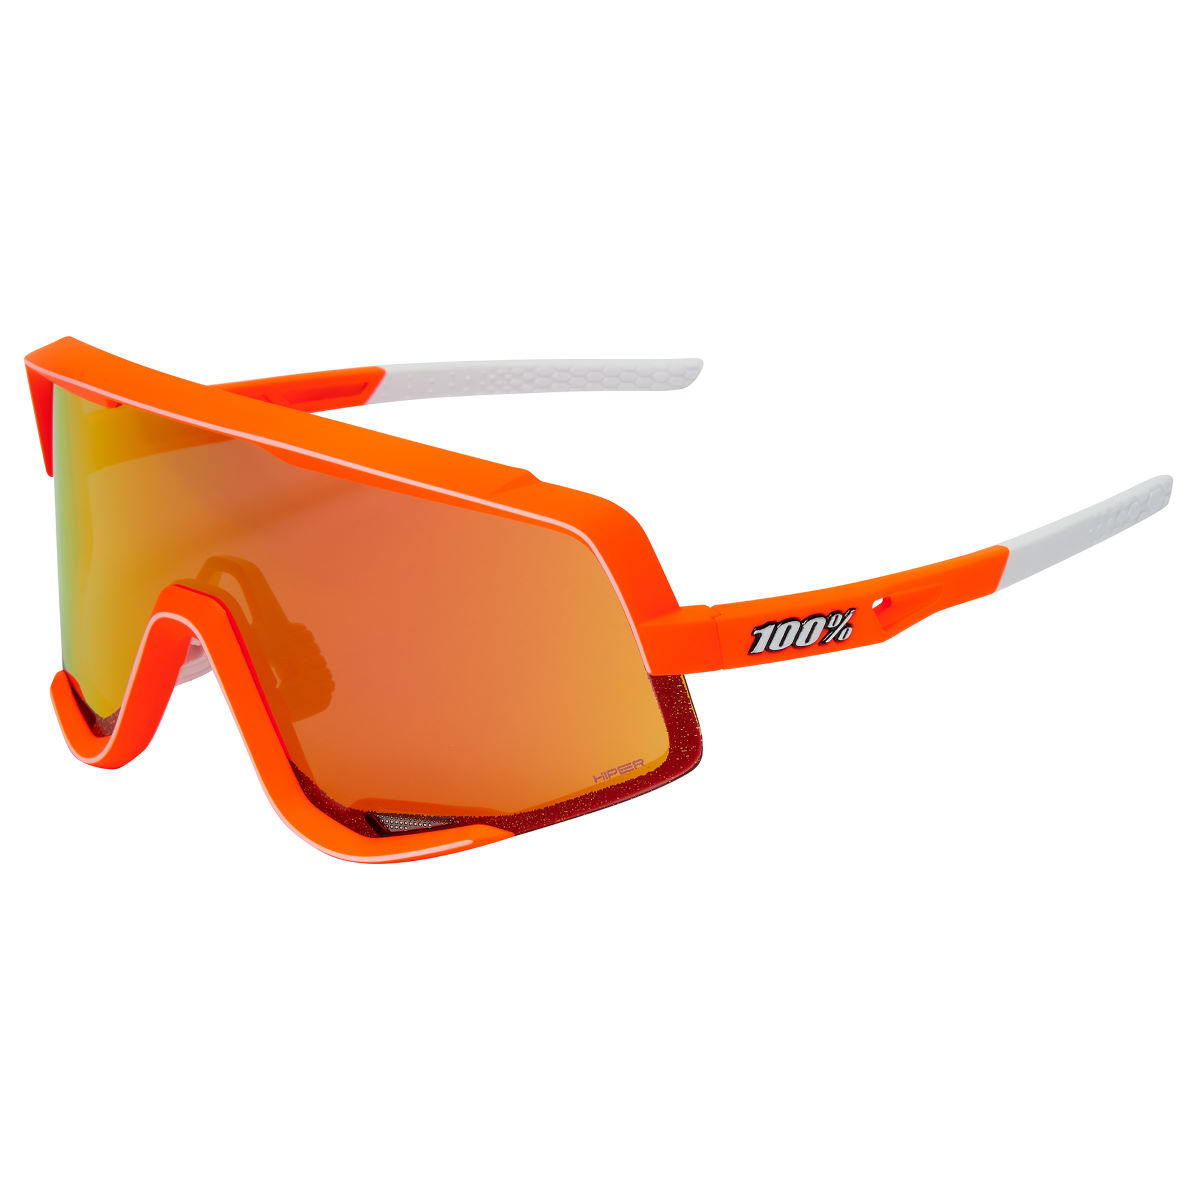 100% Glendale Soft Tact Neon Orange Hiper Sunglasses - One Size